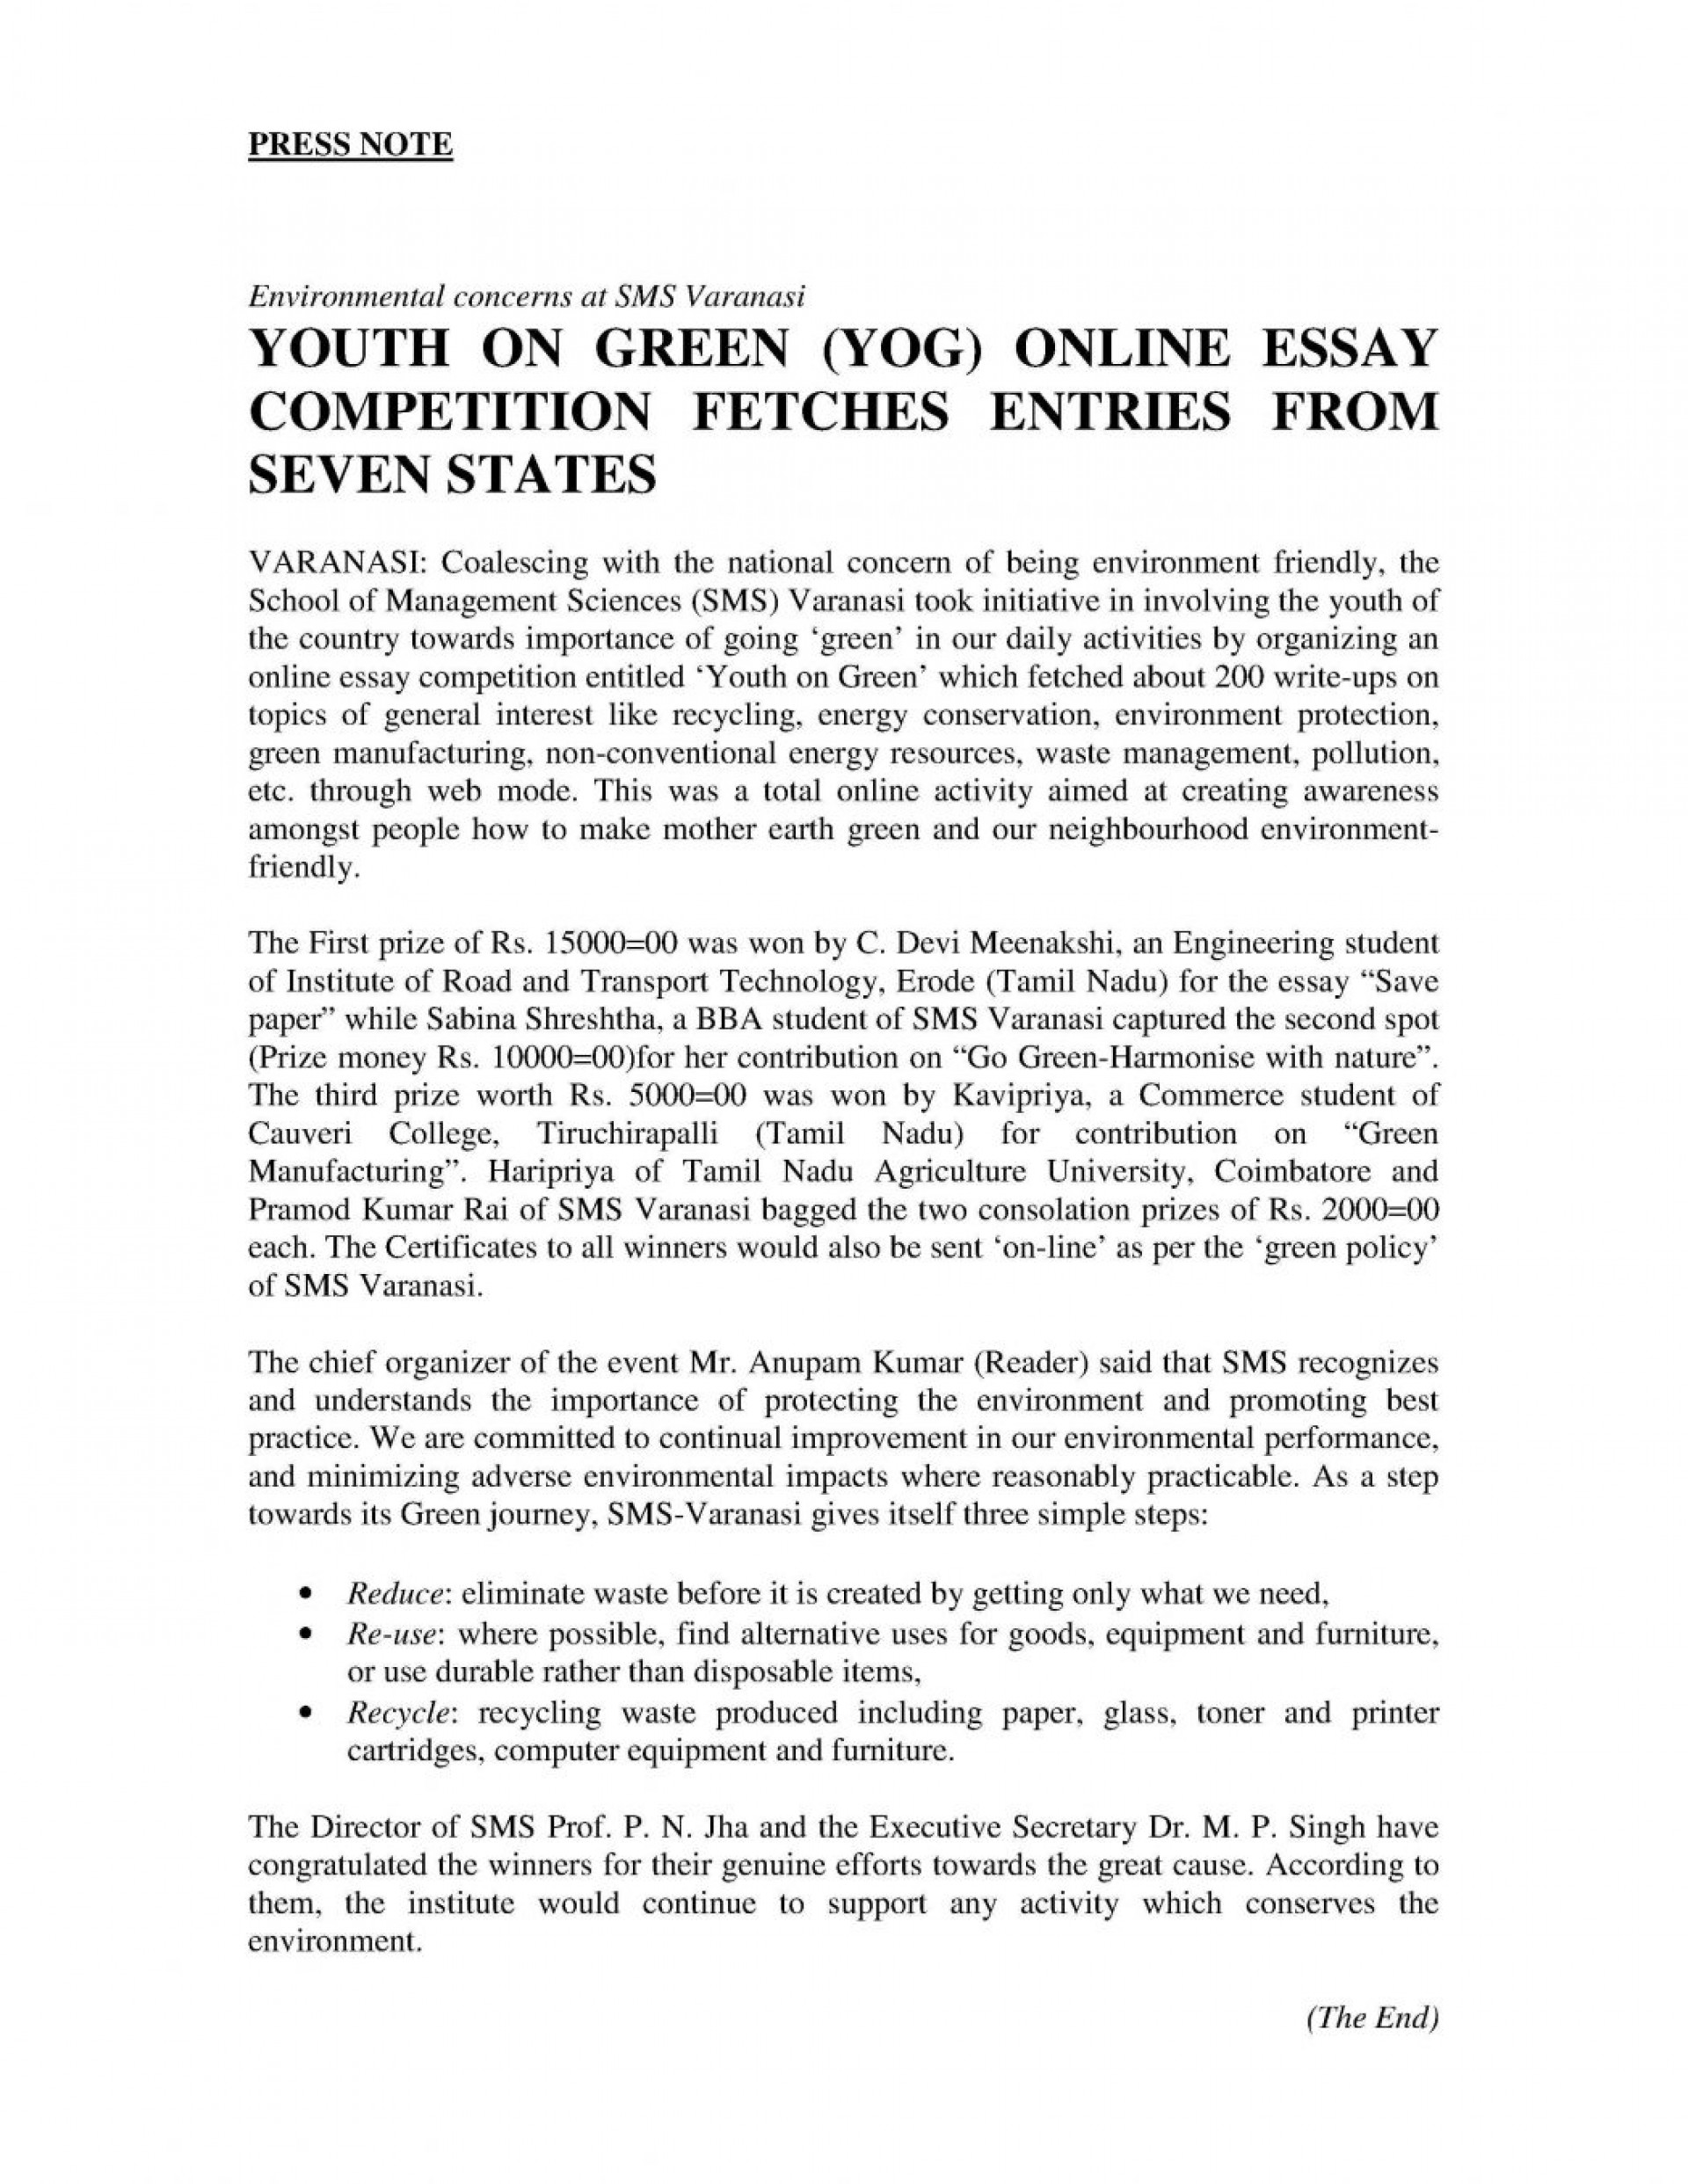 020 Best Essays For College Essay On Good Habits How Tot Application Online Yog Press Re About Yourself Examples Your Background Failure Prompt Off Hook 1048x1356 Example Amazing To Start An With A Definition Rhetorical Question Life 1920